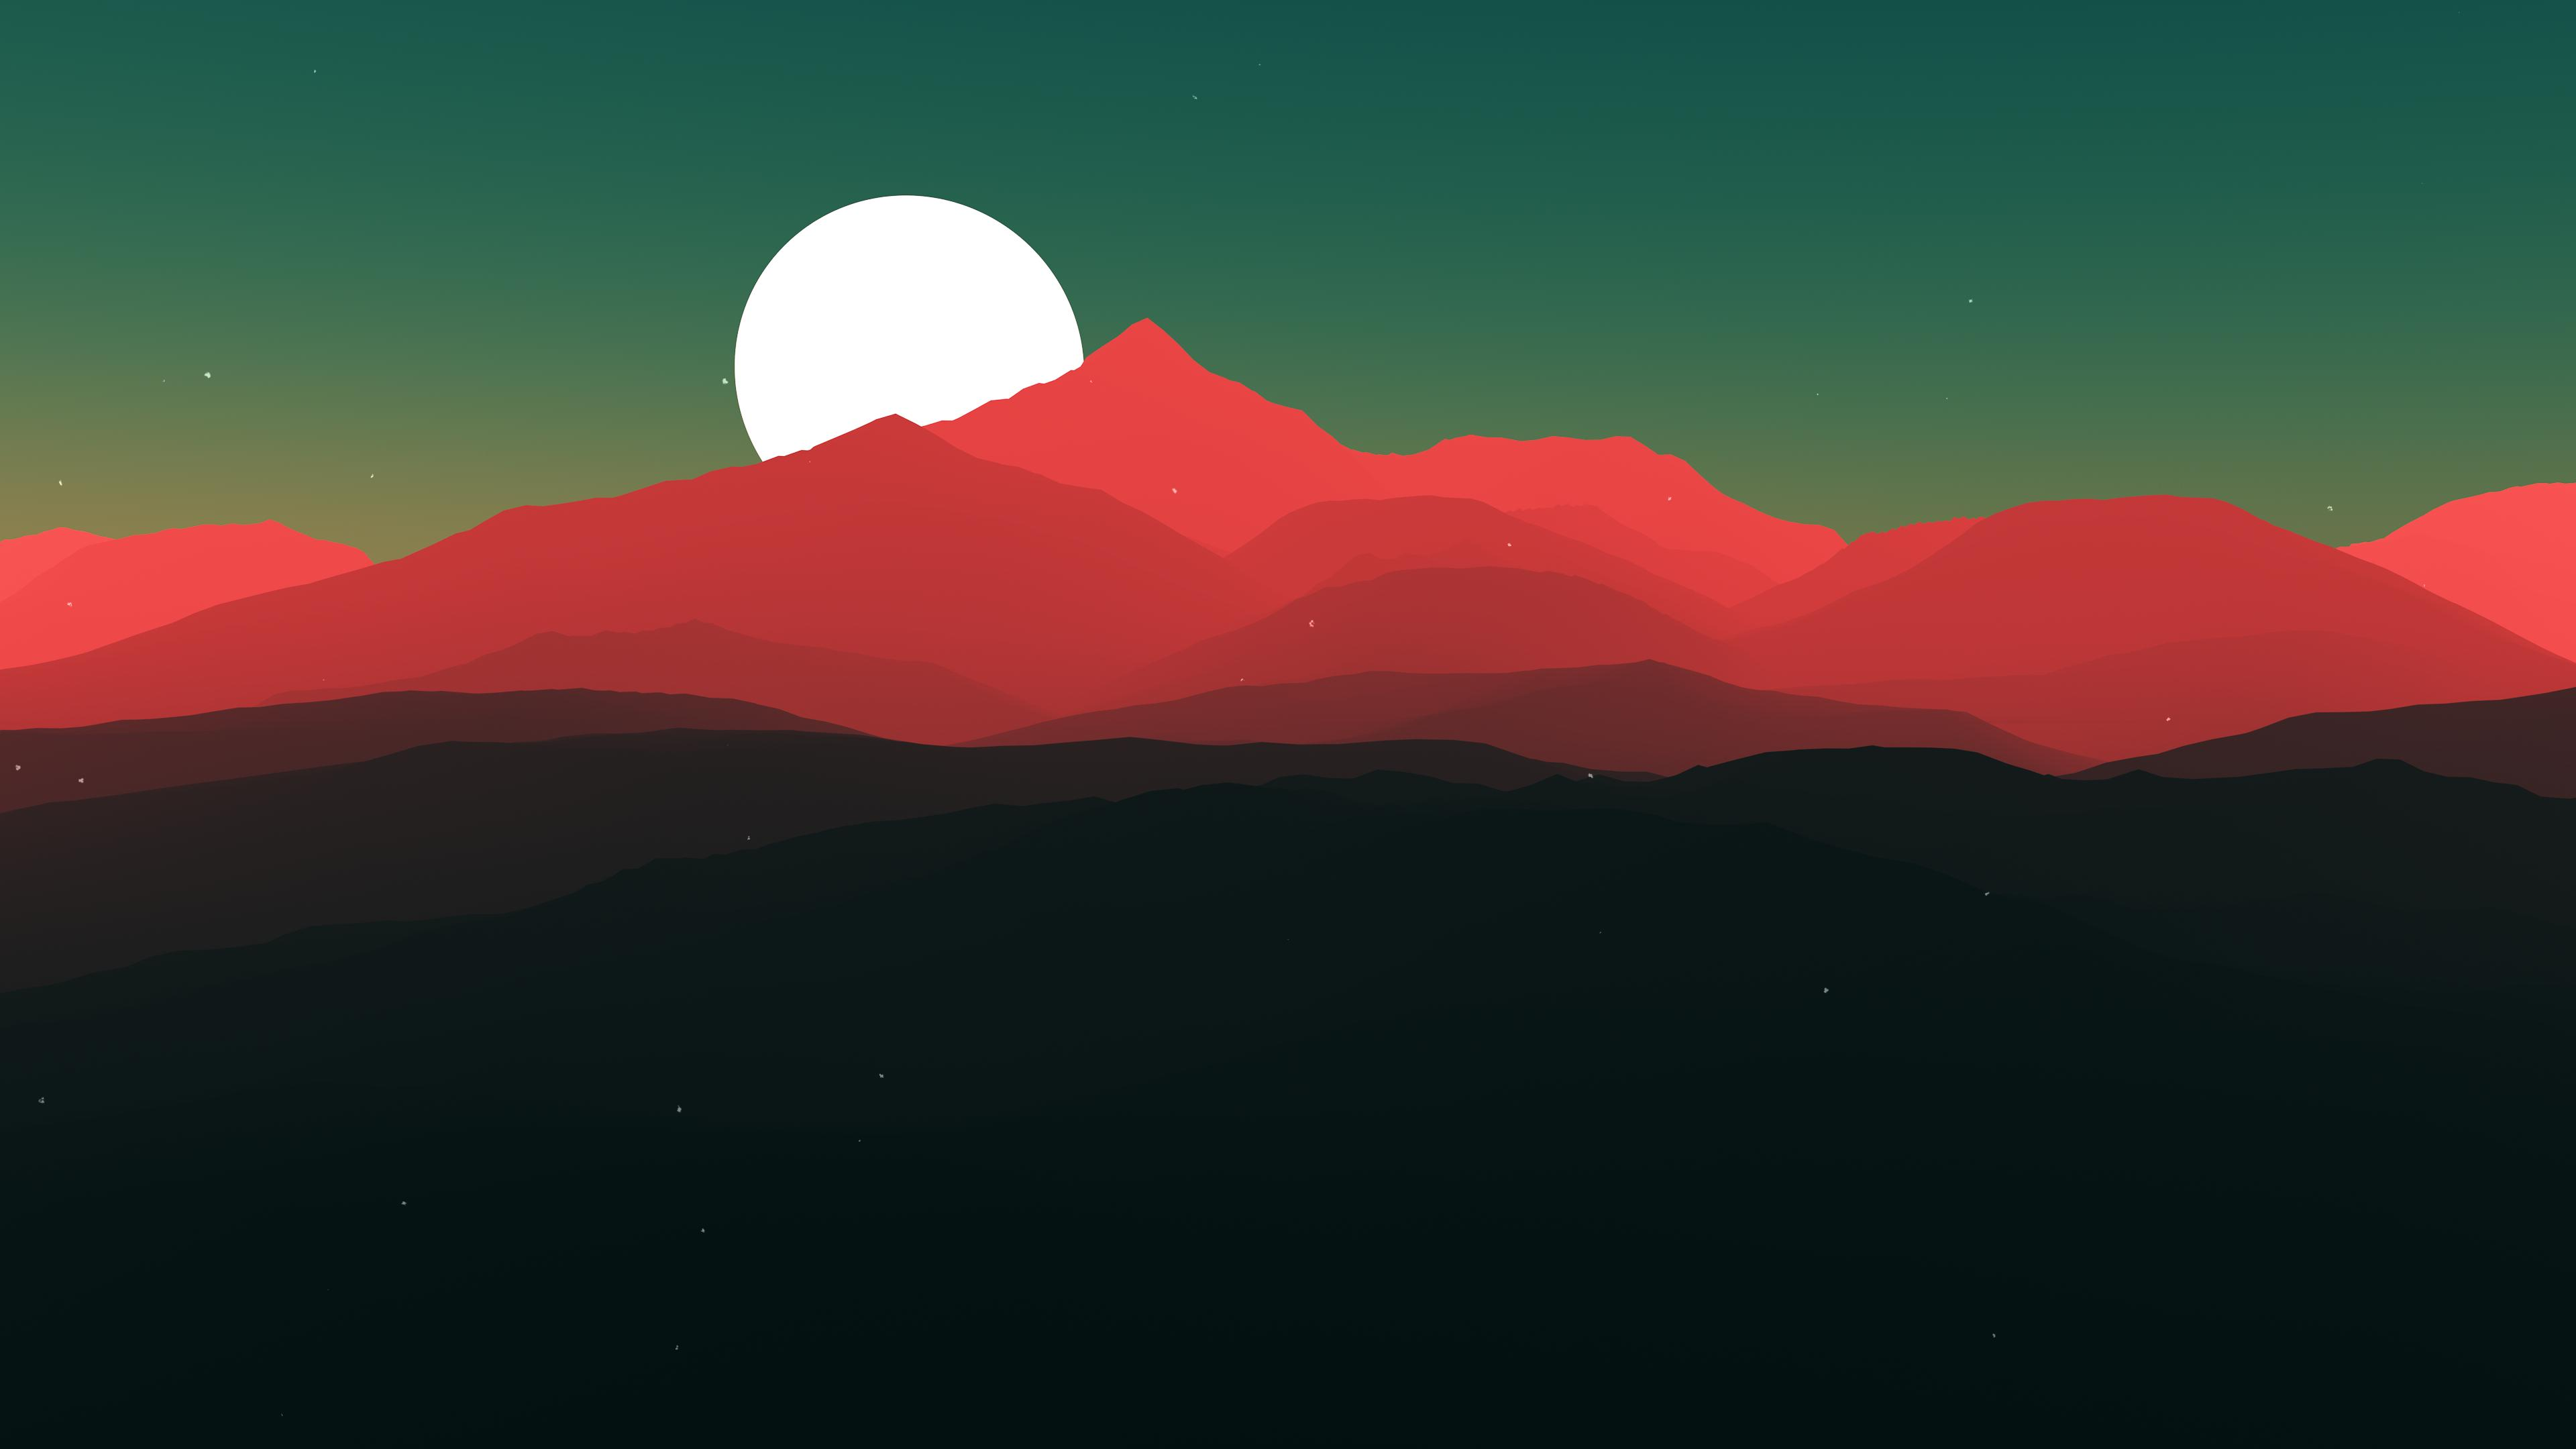 4k Minimalist Wallpapers Top Free 4k Minimalist